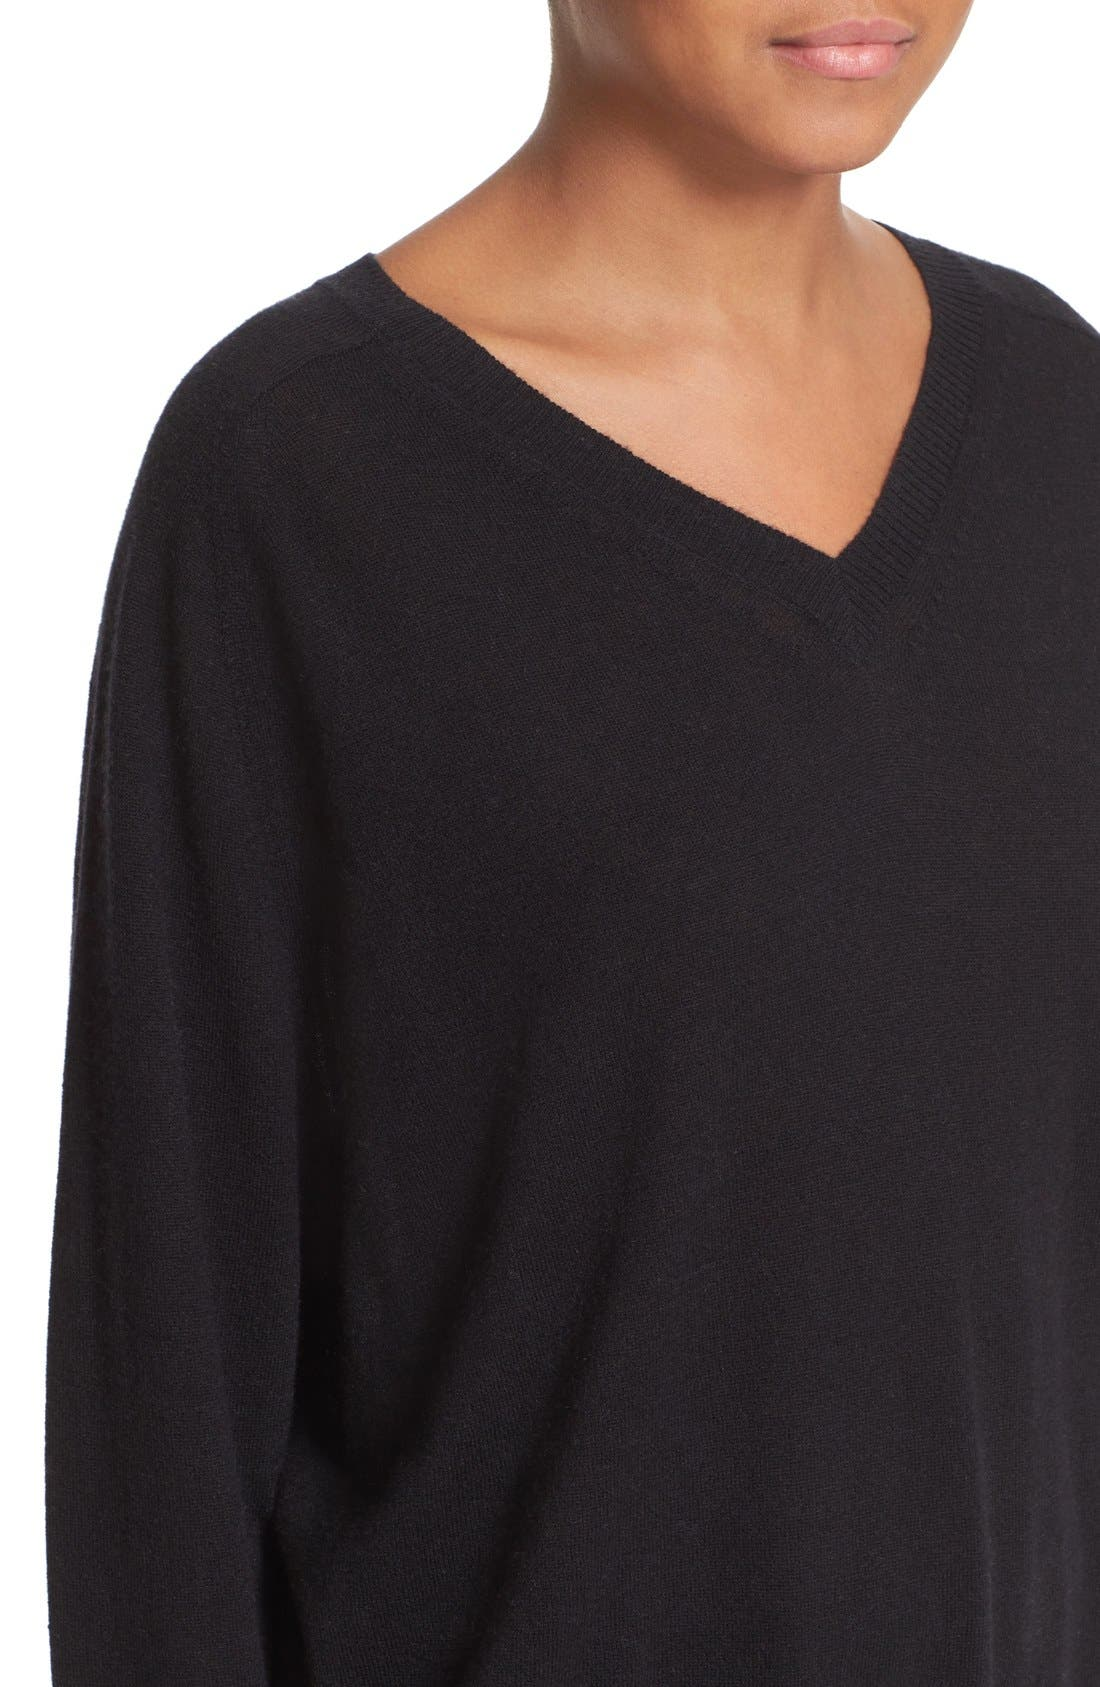 VINCE, Relaxed Cashmere V-Neck Sweater, Alternate thumbnail 3, color, 001